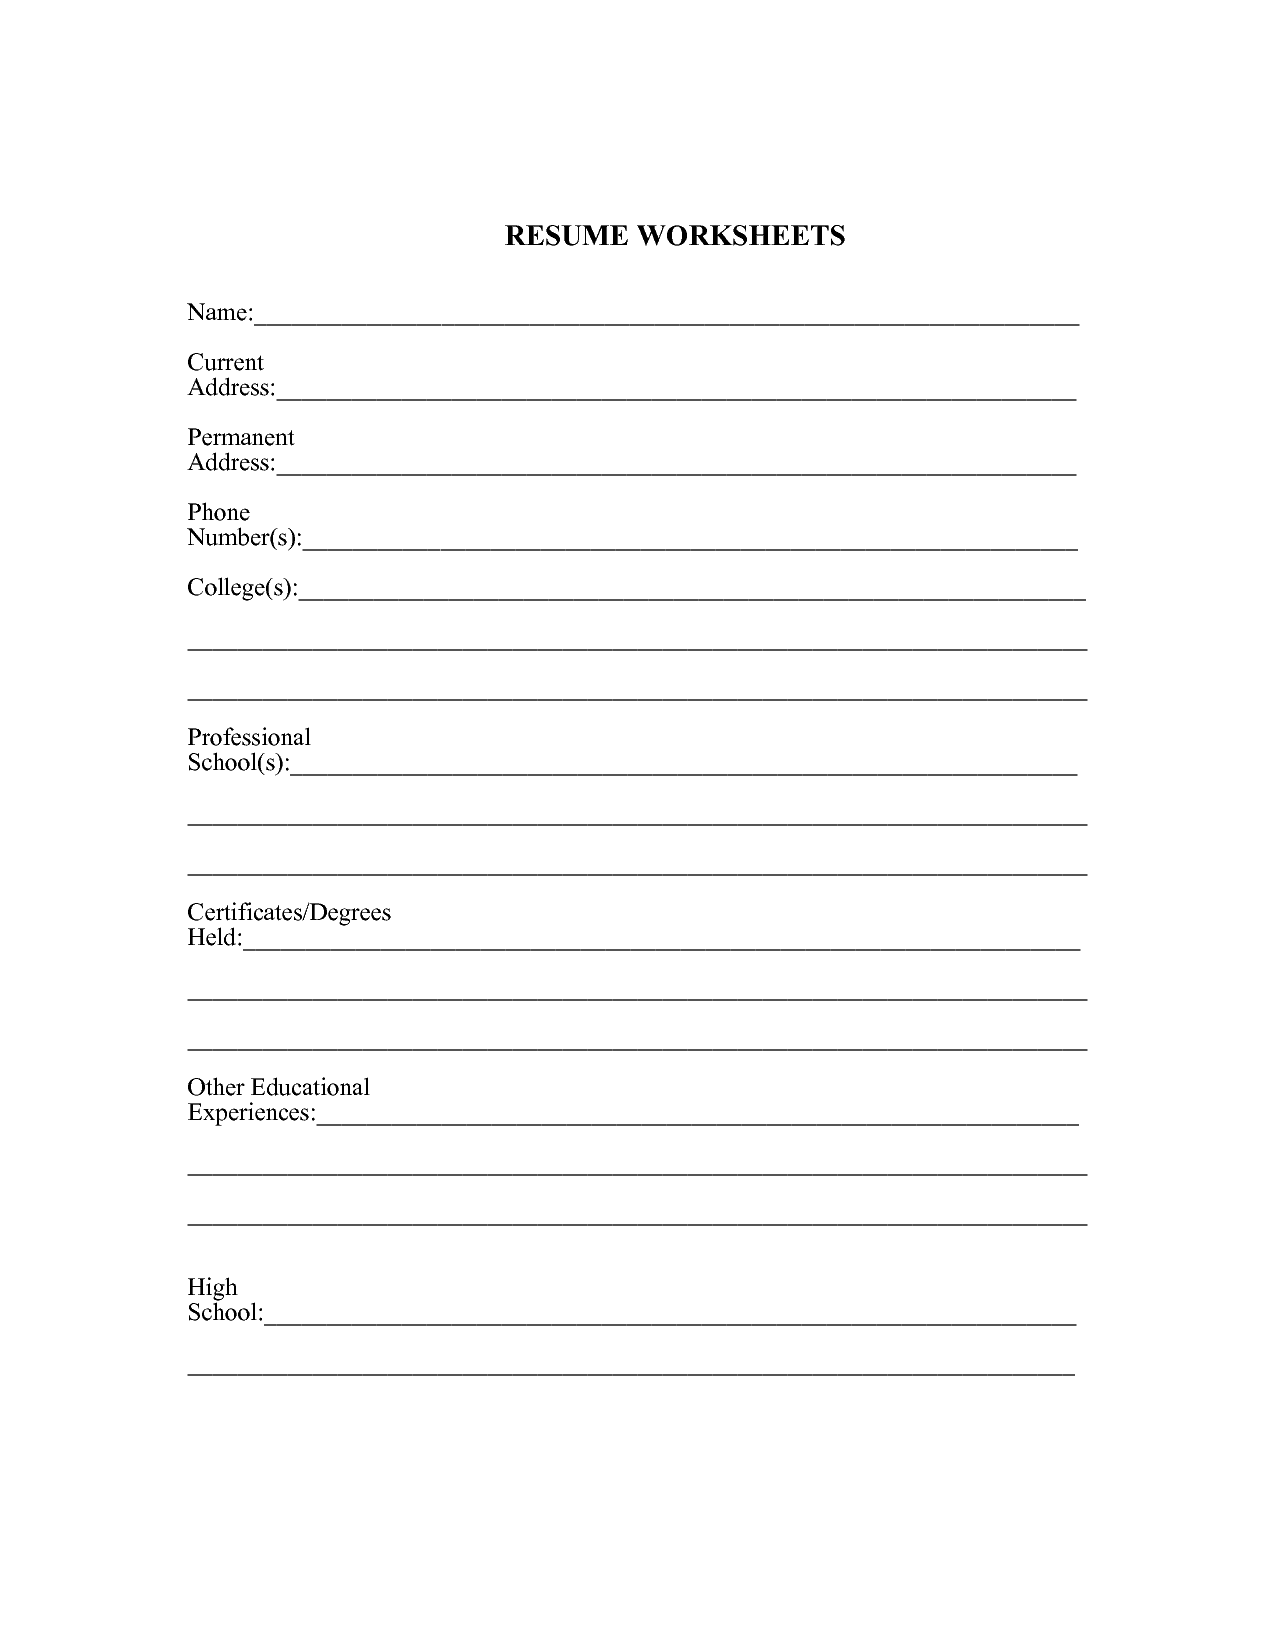 Hyperbole Worksheet For College Students